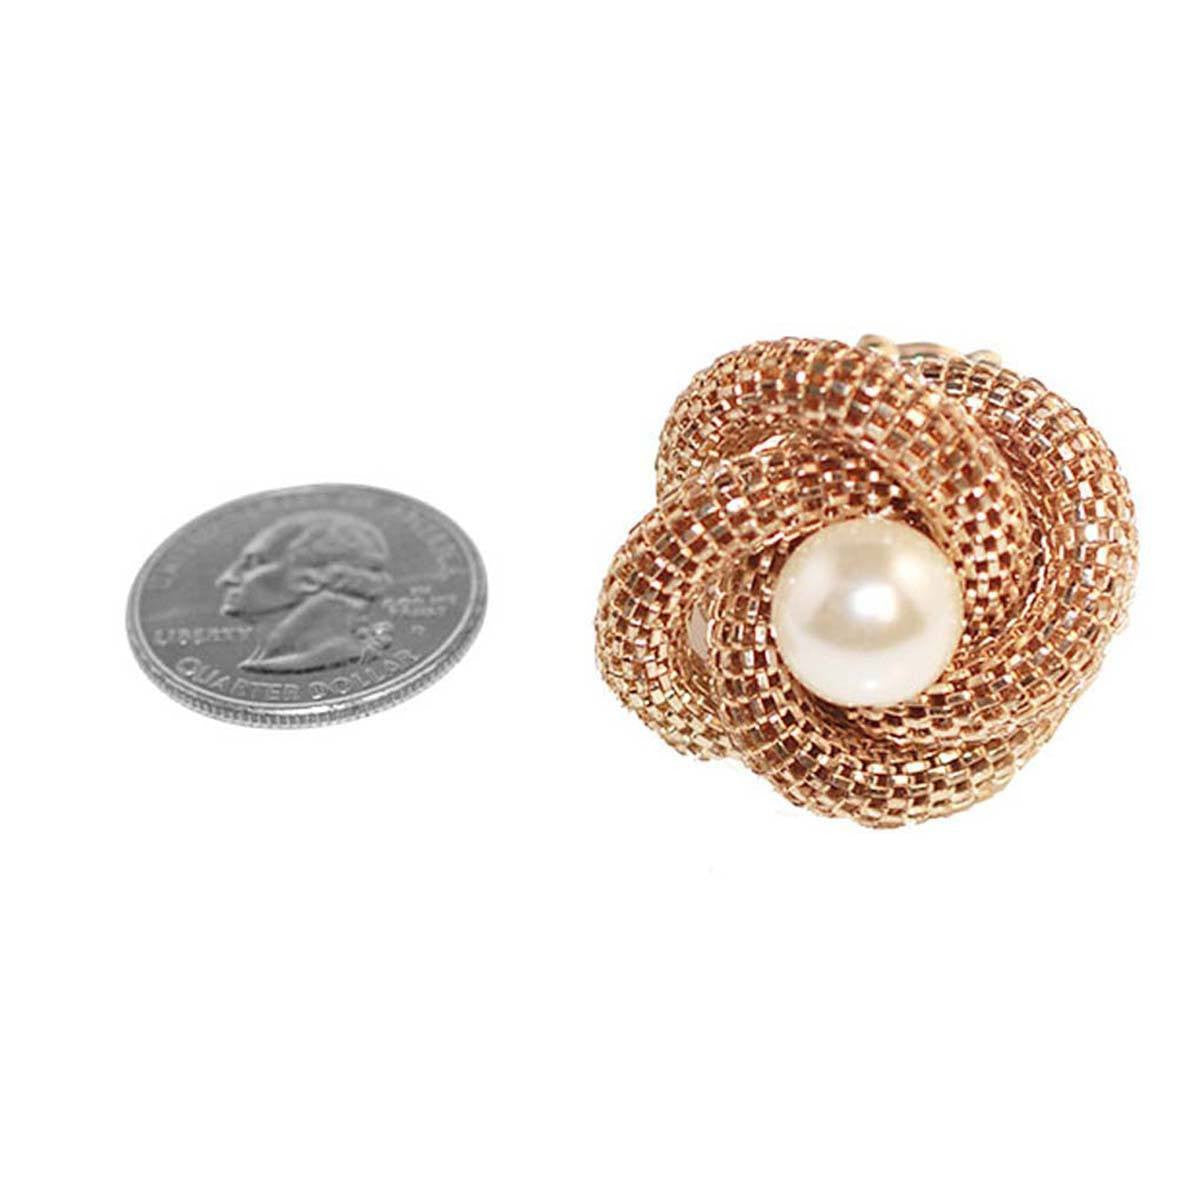 Gold Mesh Knot Ring 3, Faux Pearl Center, Adjustable